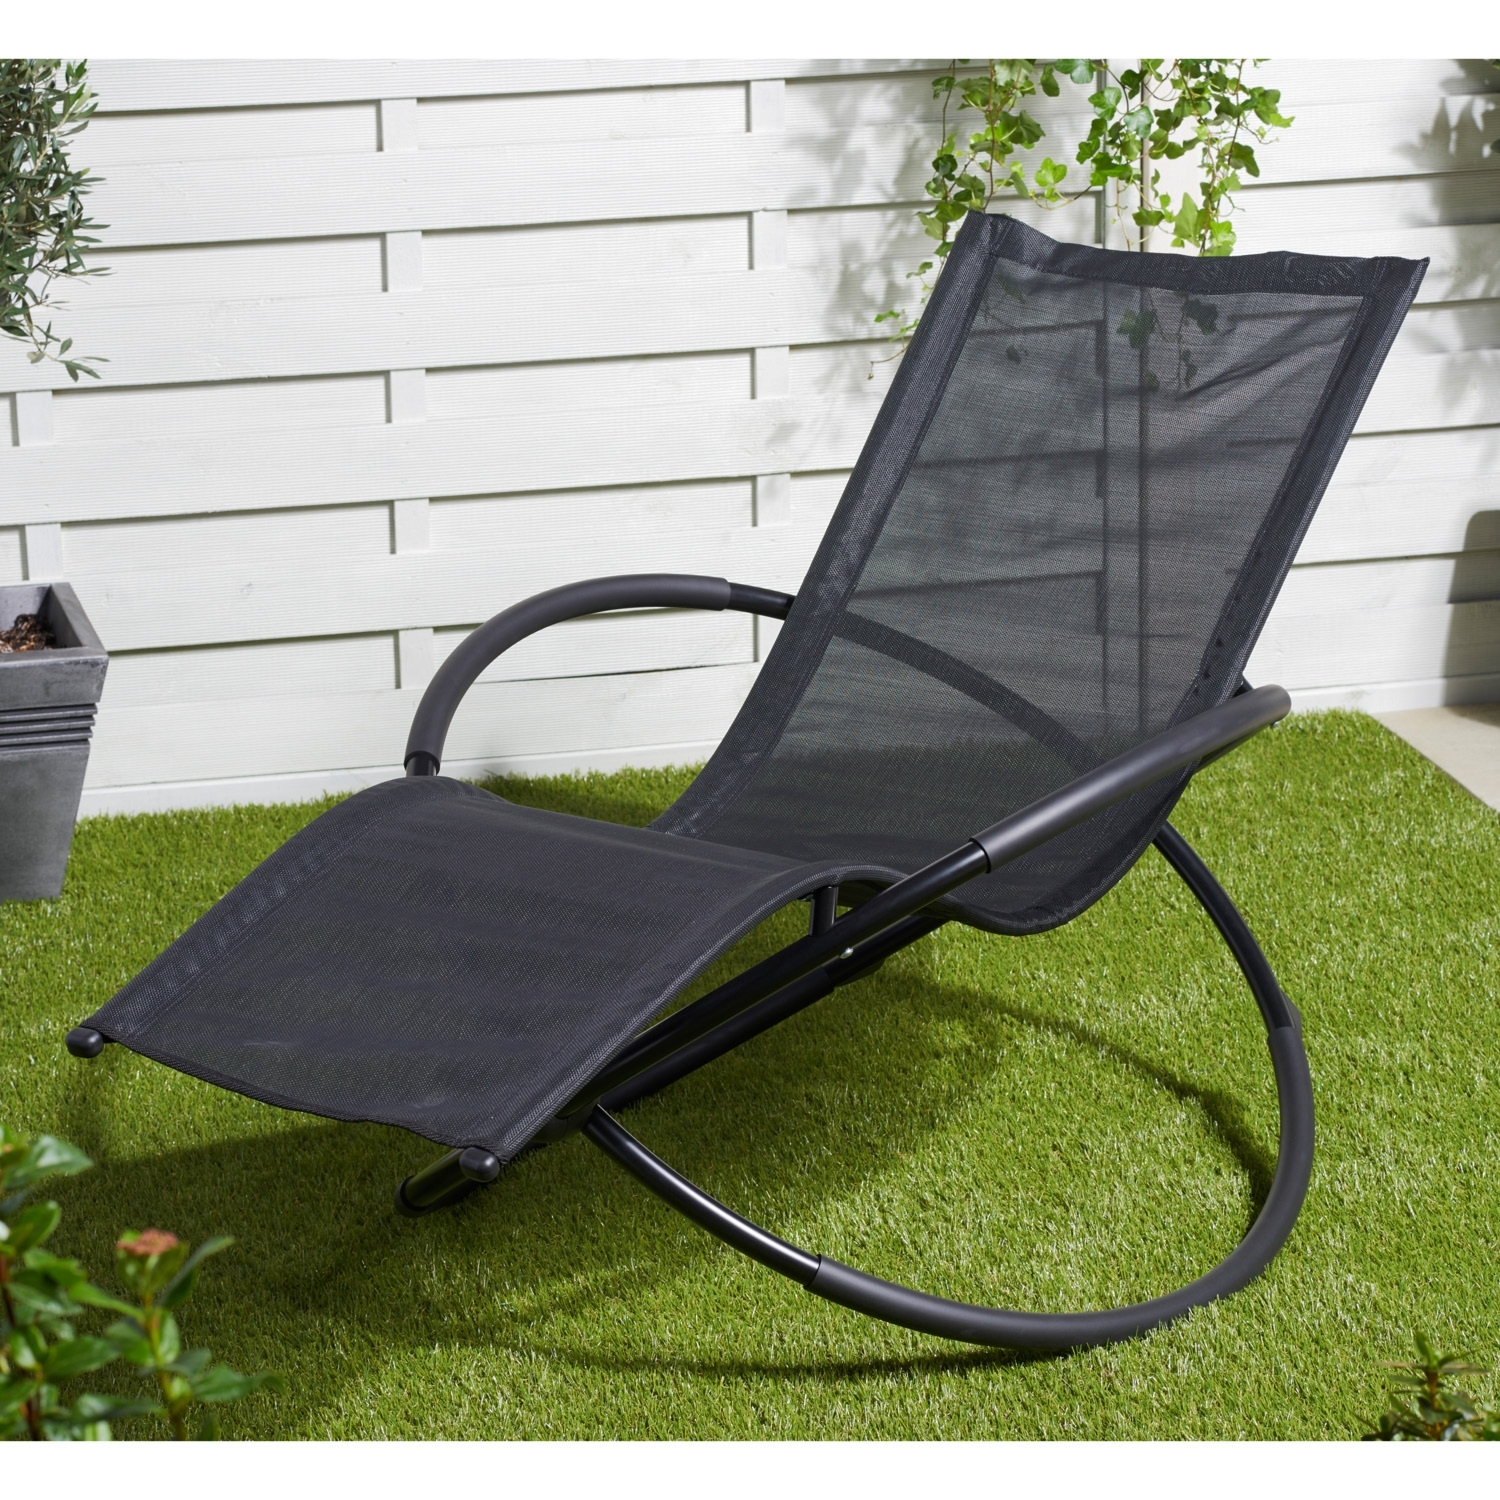 Florida Garden Rocking Chair Within Rocking Chairs For Garden (#4 of 15)